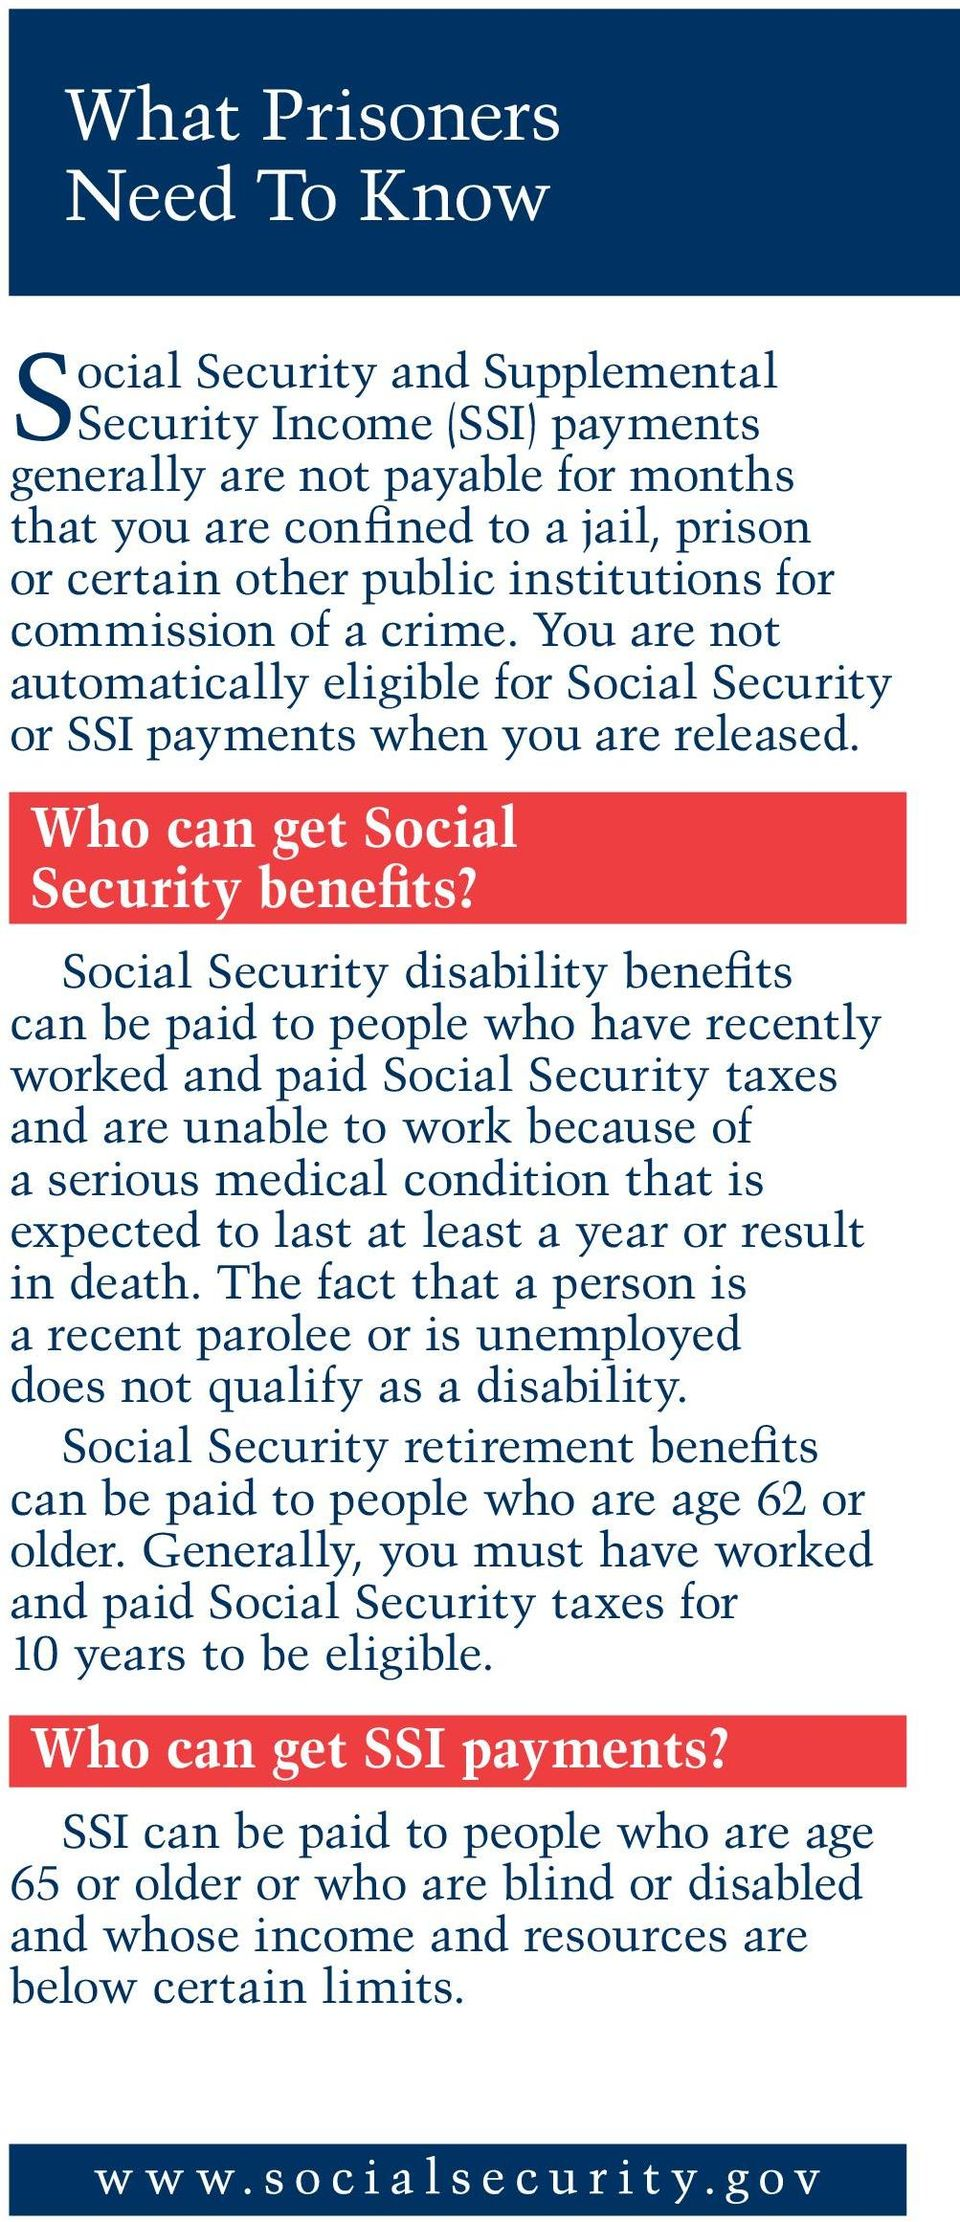 Social Security disability benefits can be paid to people who have recently worked and paid Social Security taxes and are unable to work because of a serious medical condition that is expected to